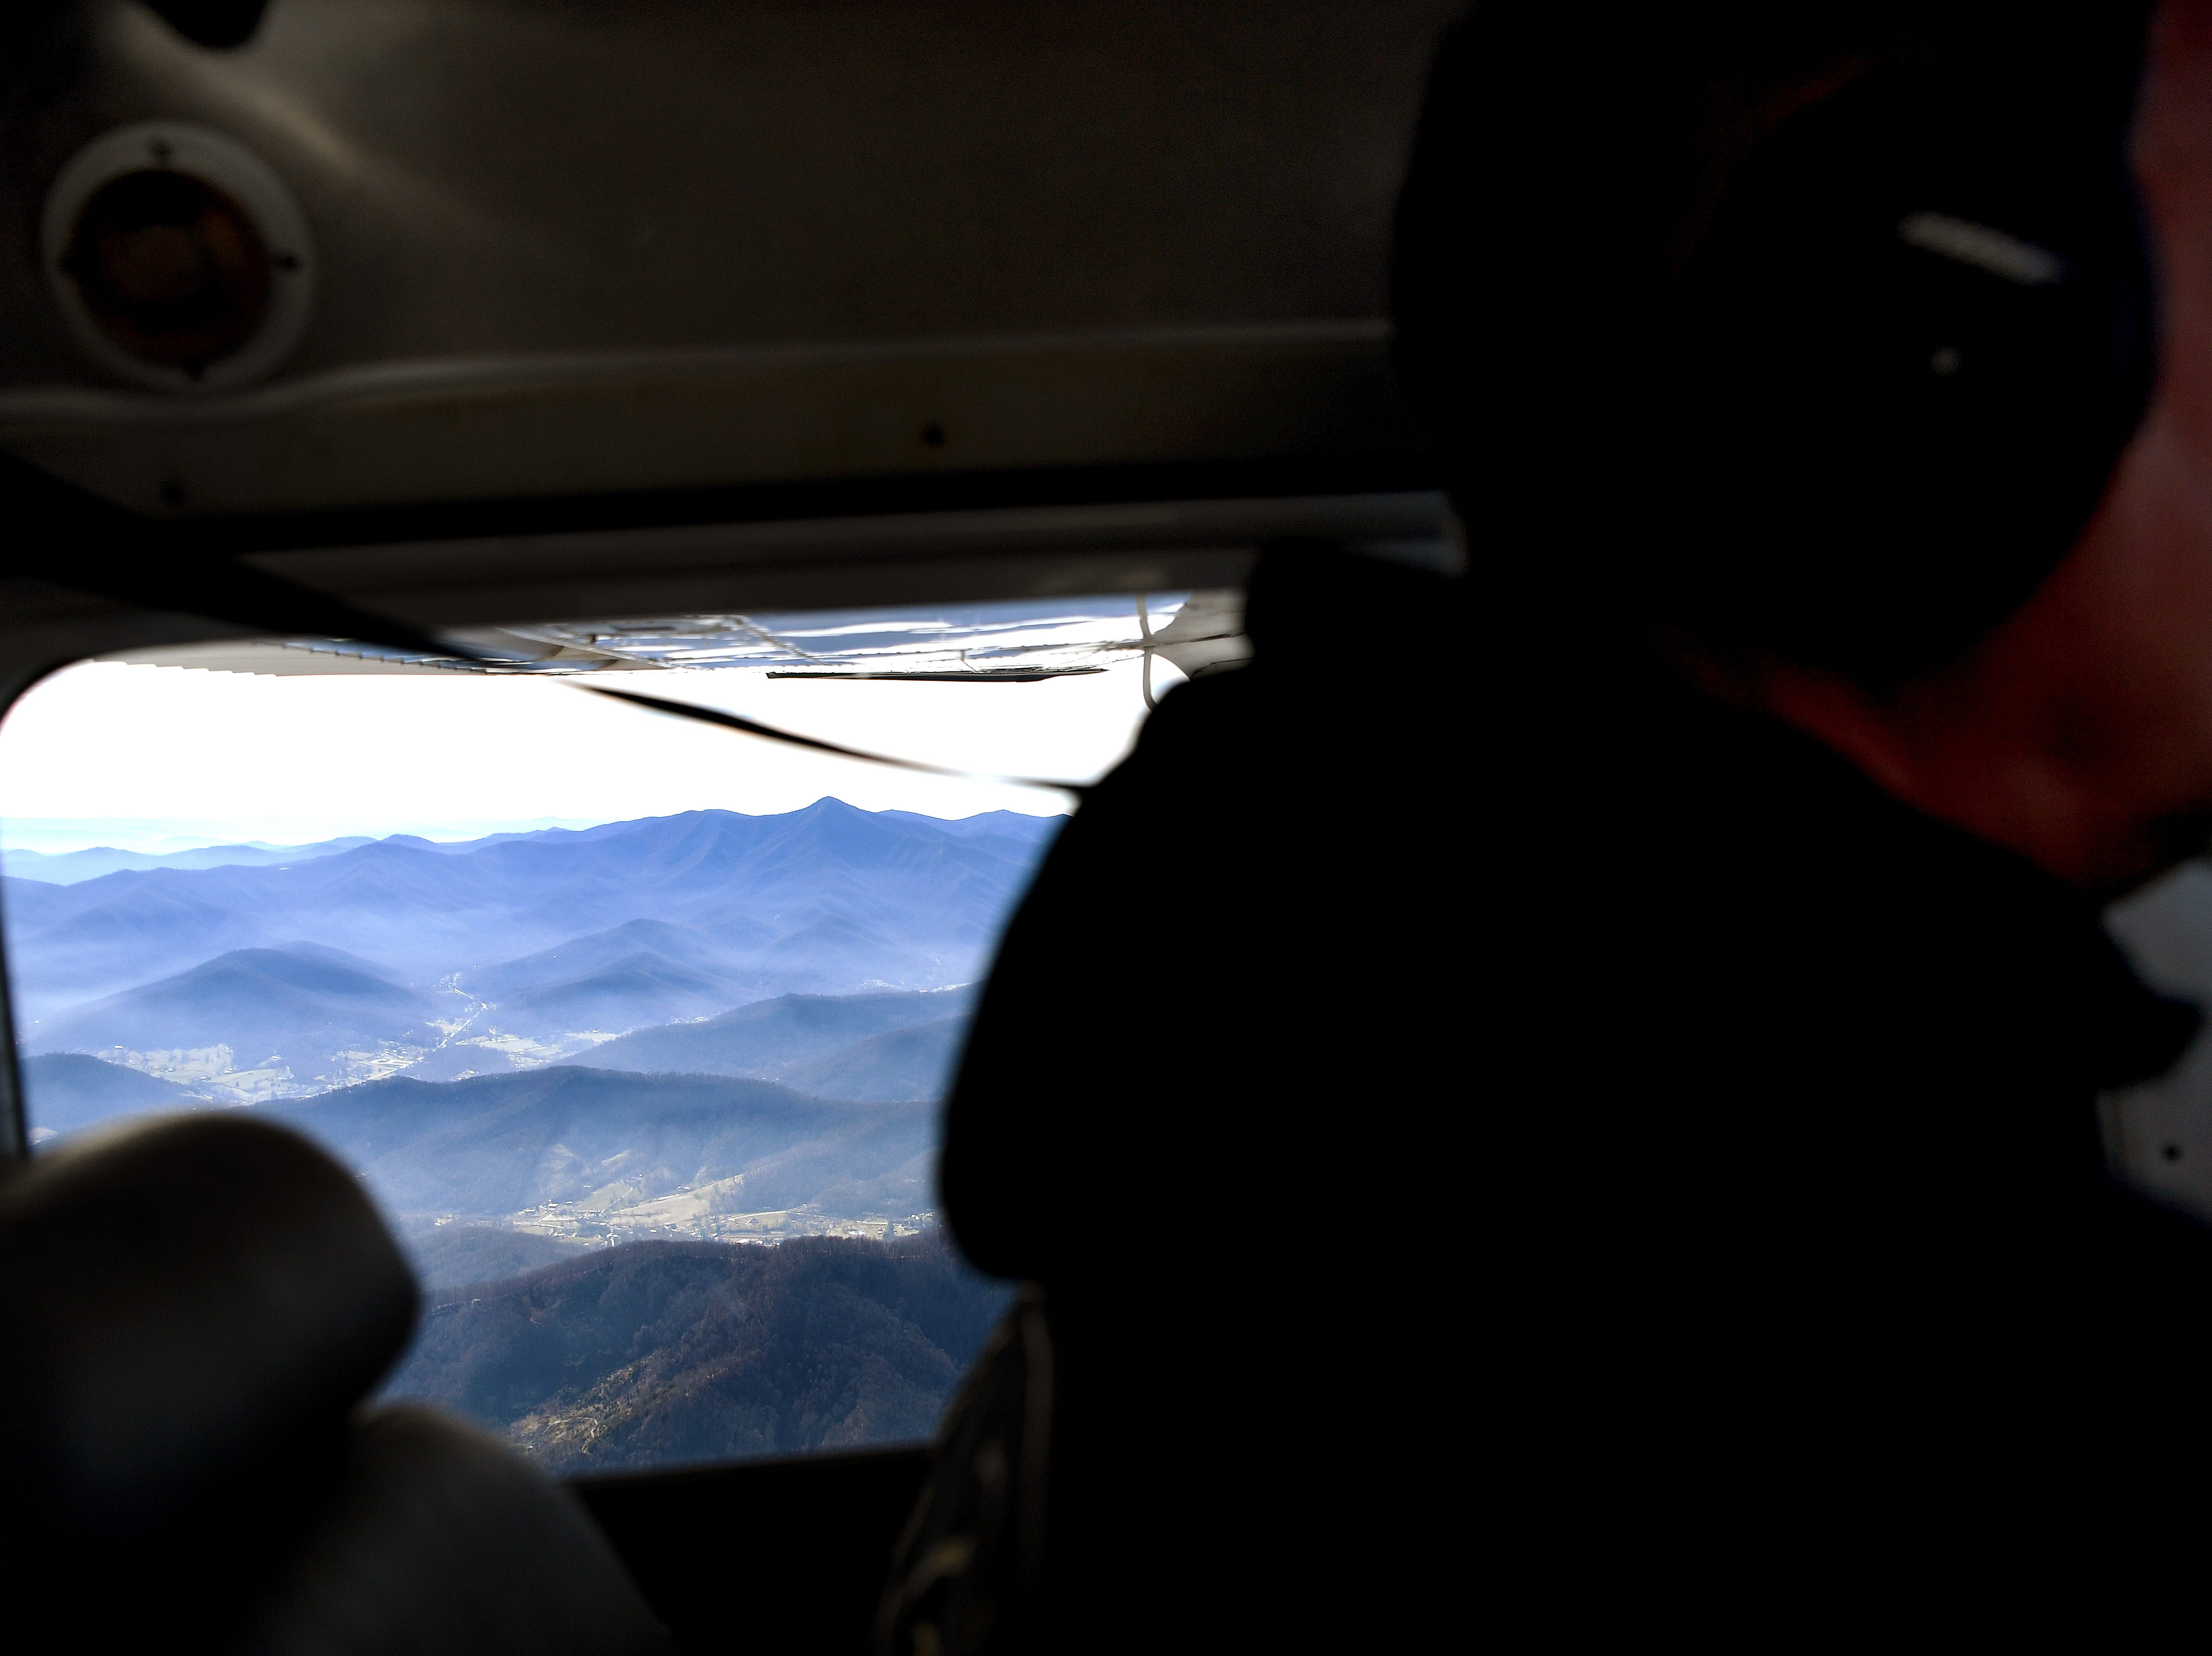 Pilot Hap Endler flies his 1972 Cessna 182P, a fixed-wing single-engine airplane, toward the North Carolina border with Tennessee from the Asheville Regional Airport on Dec. 6, 2018. Endler is a volunteer pilot with SouthWings, a non-profit conservation organization that uses flight for ecosystem and biodiversity advocacy. Photo made possible by SouthWings.